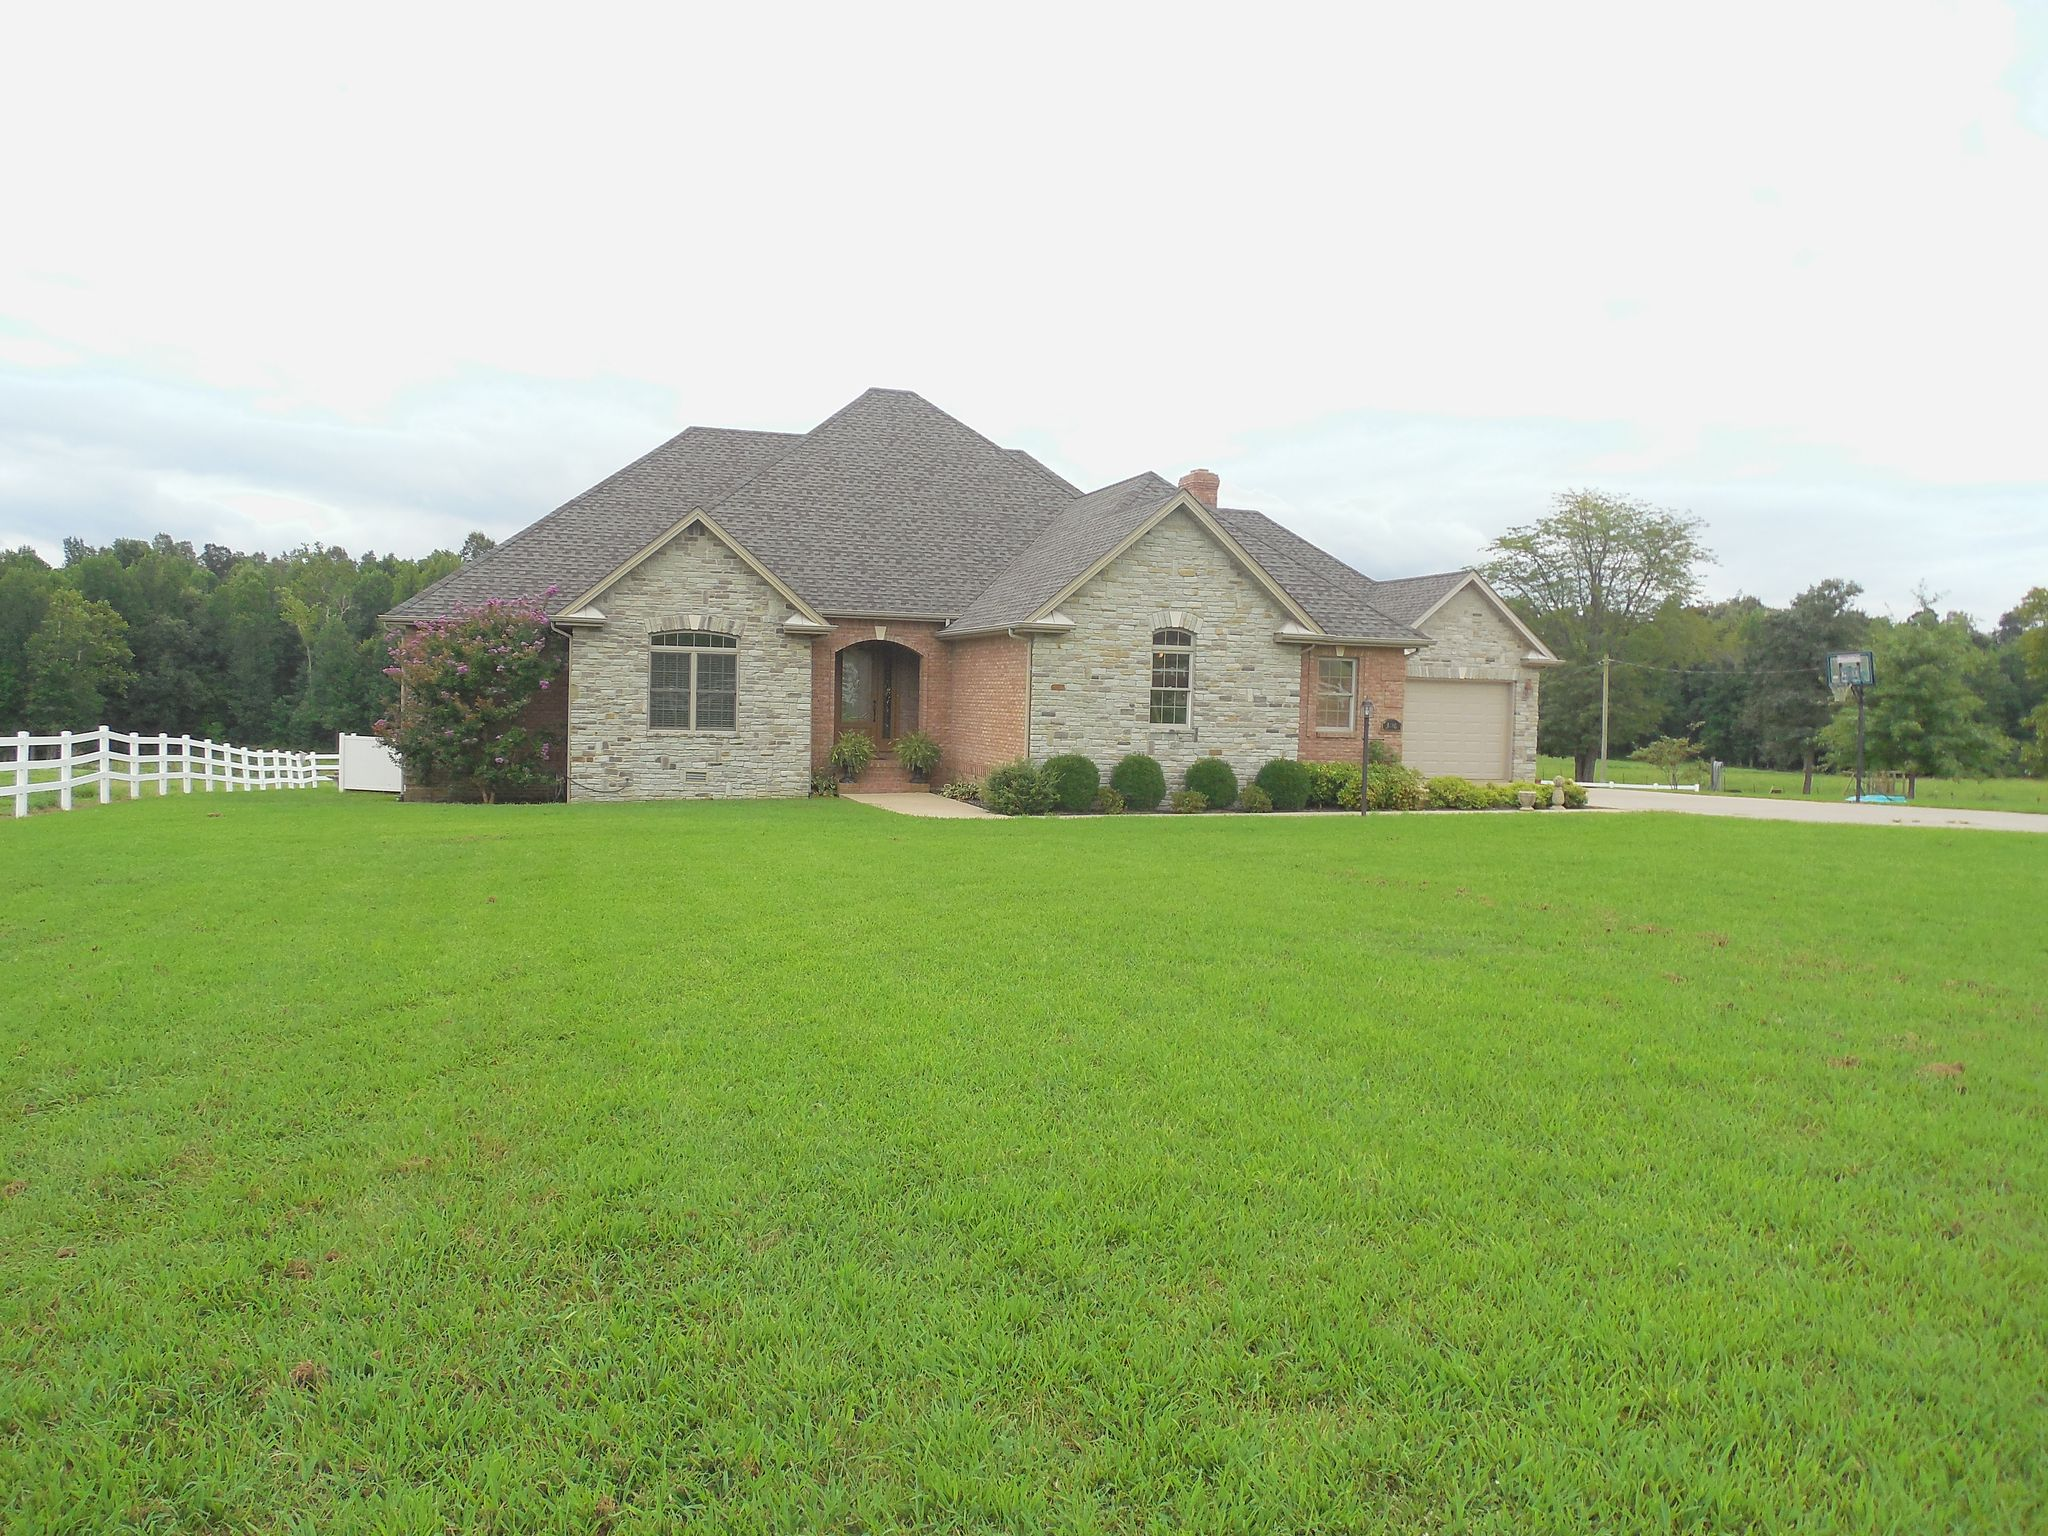 3716 brown rd madisonville ky 42431 4 bed 4 bath single family rh trulia com